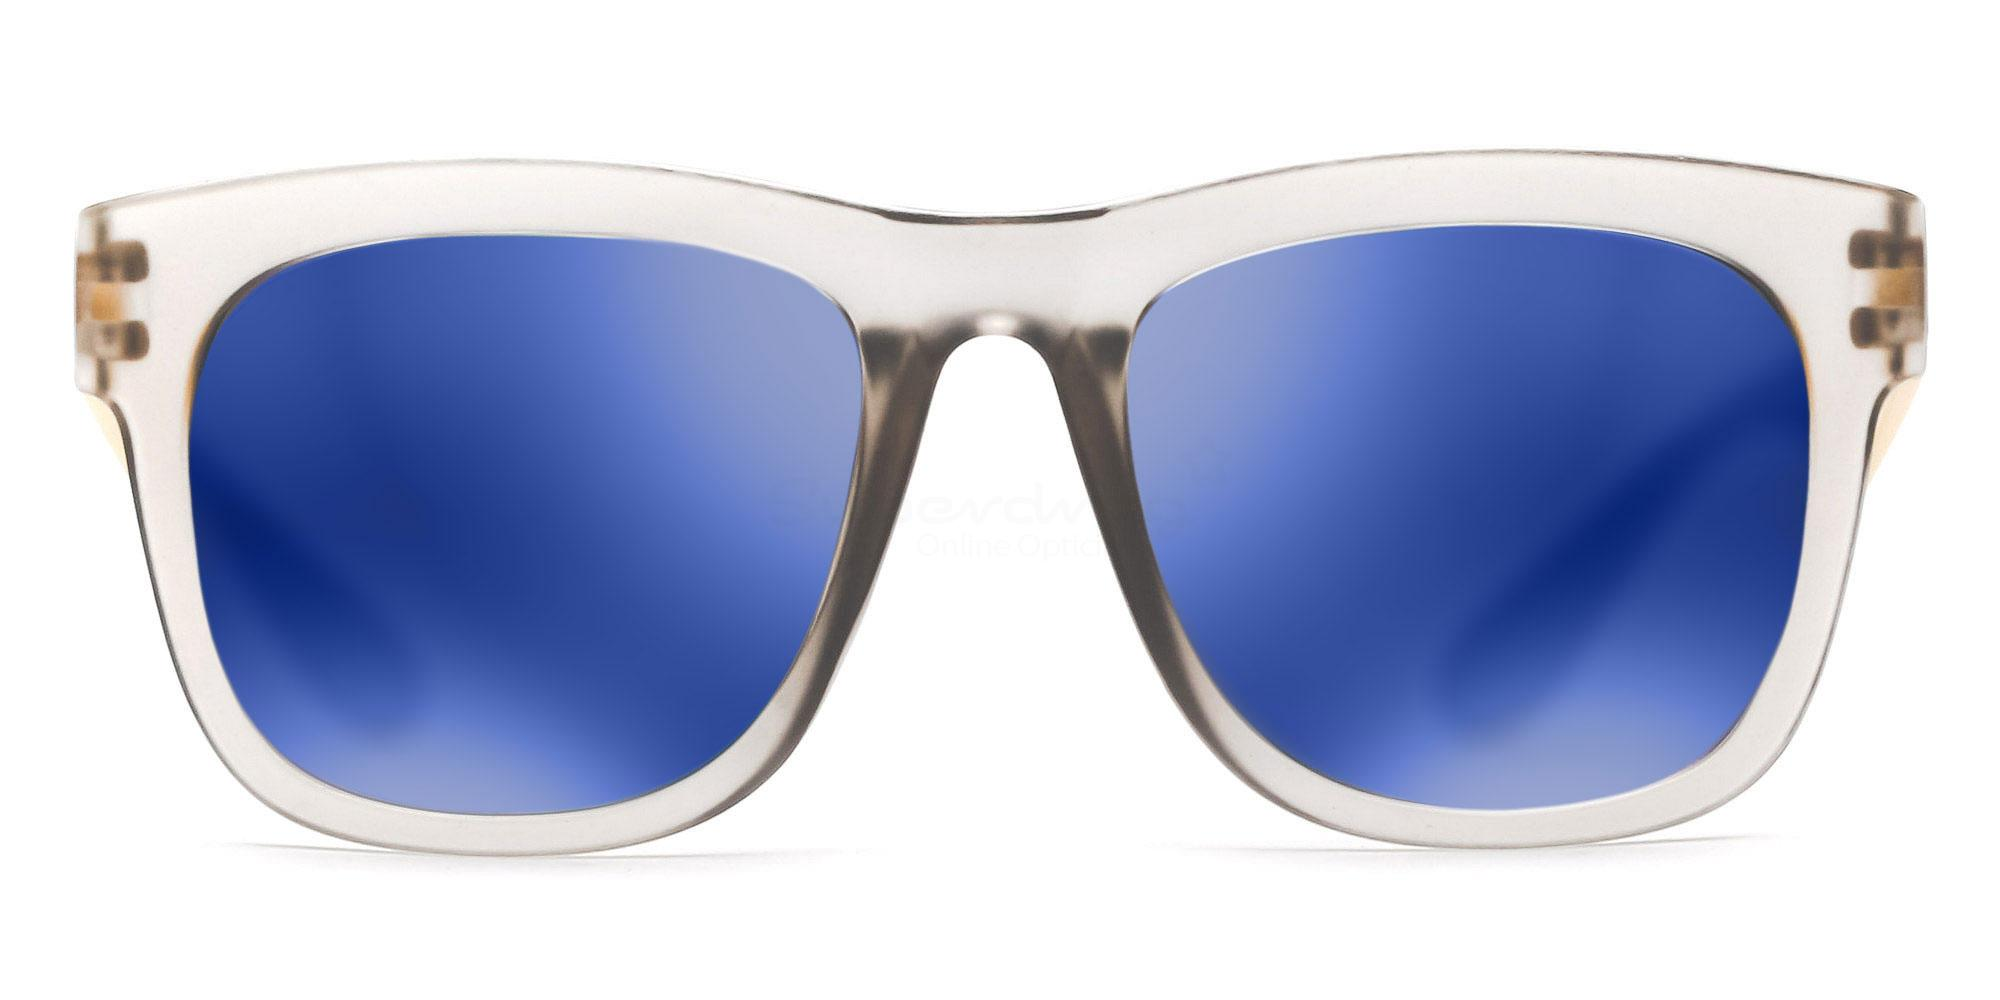 C17 S9199 Sunglasses, Indium